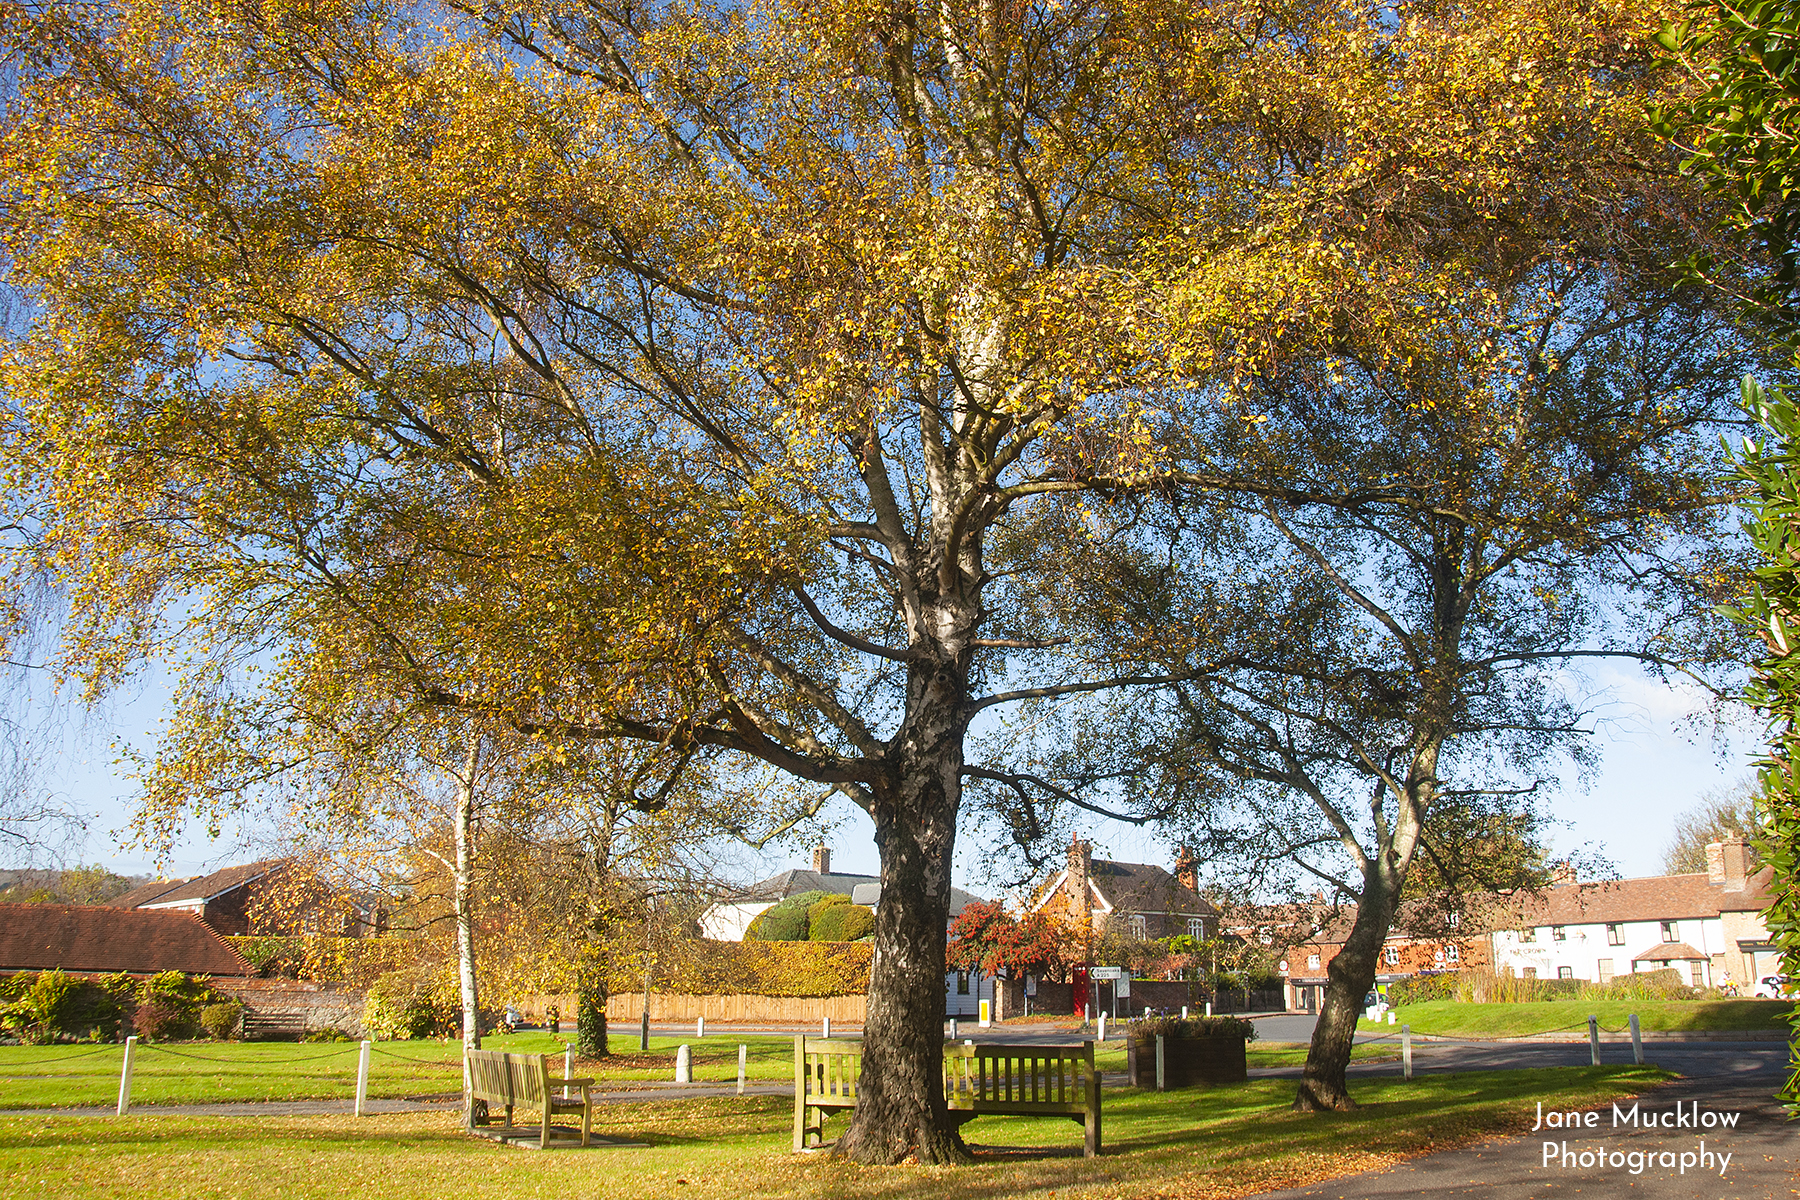 Photograph of the Autumn trees on the village green